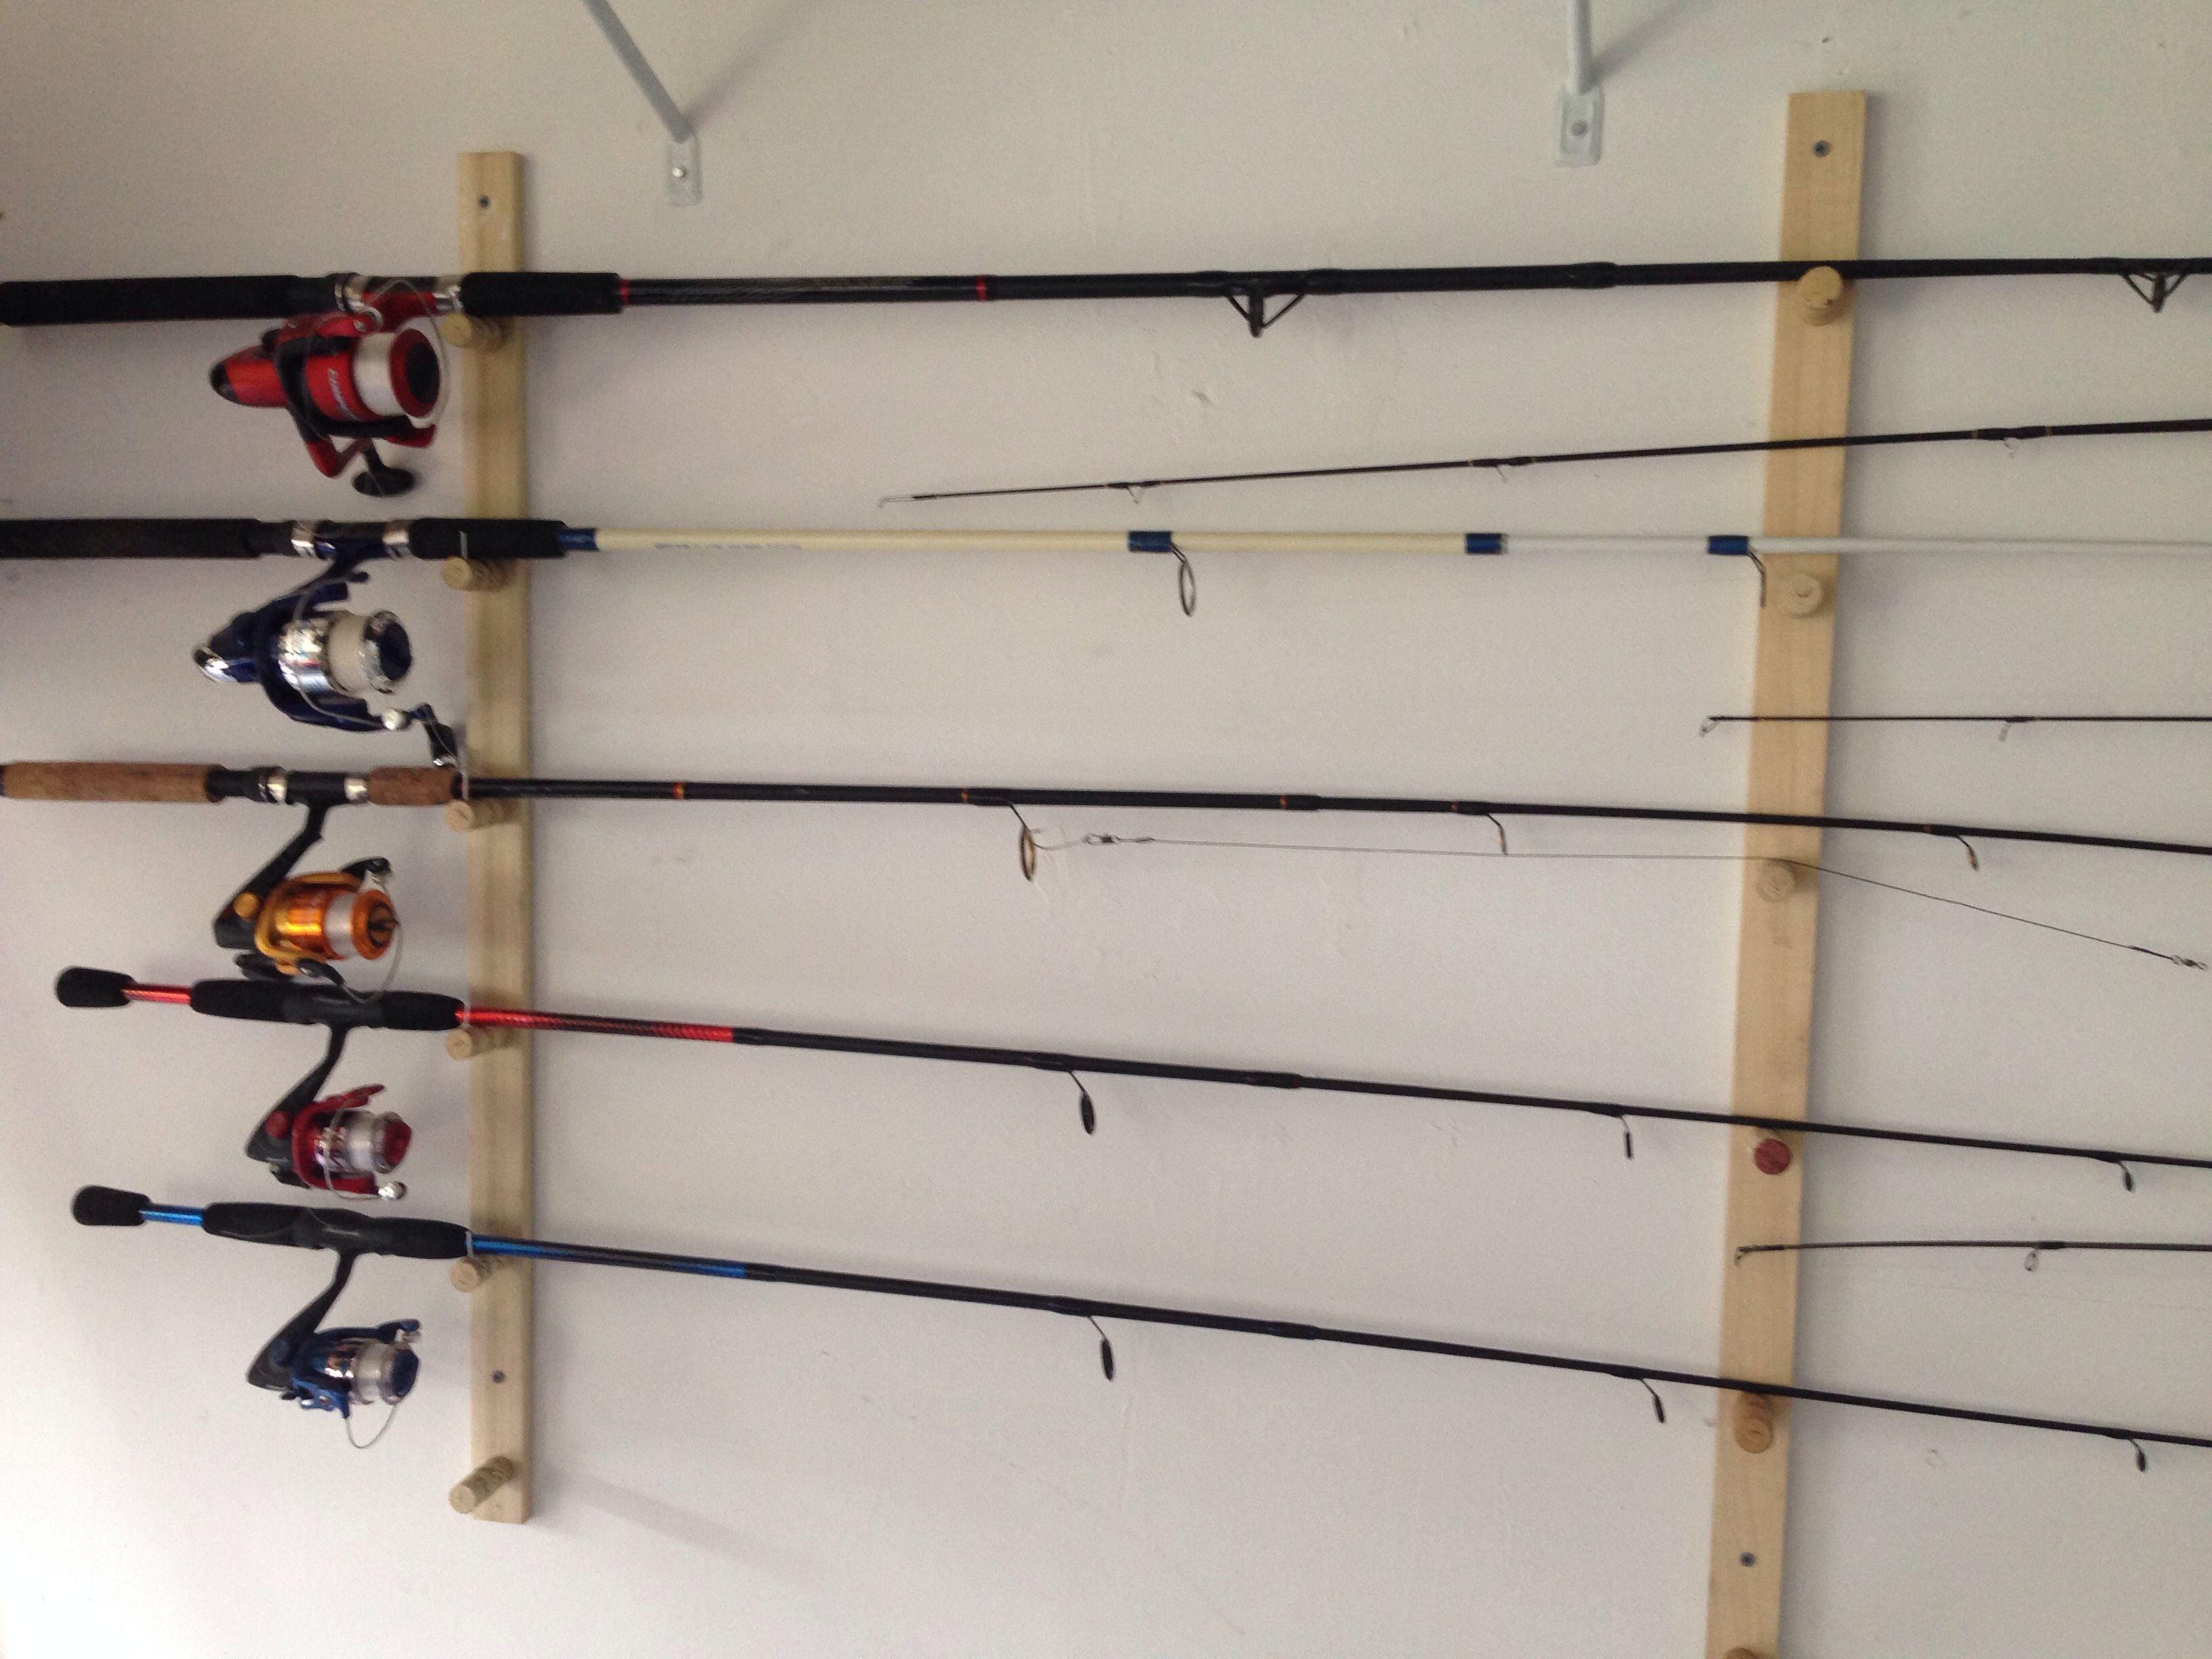 Share for Fishing rod holders for home